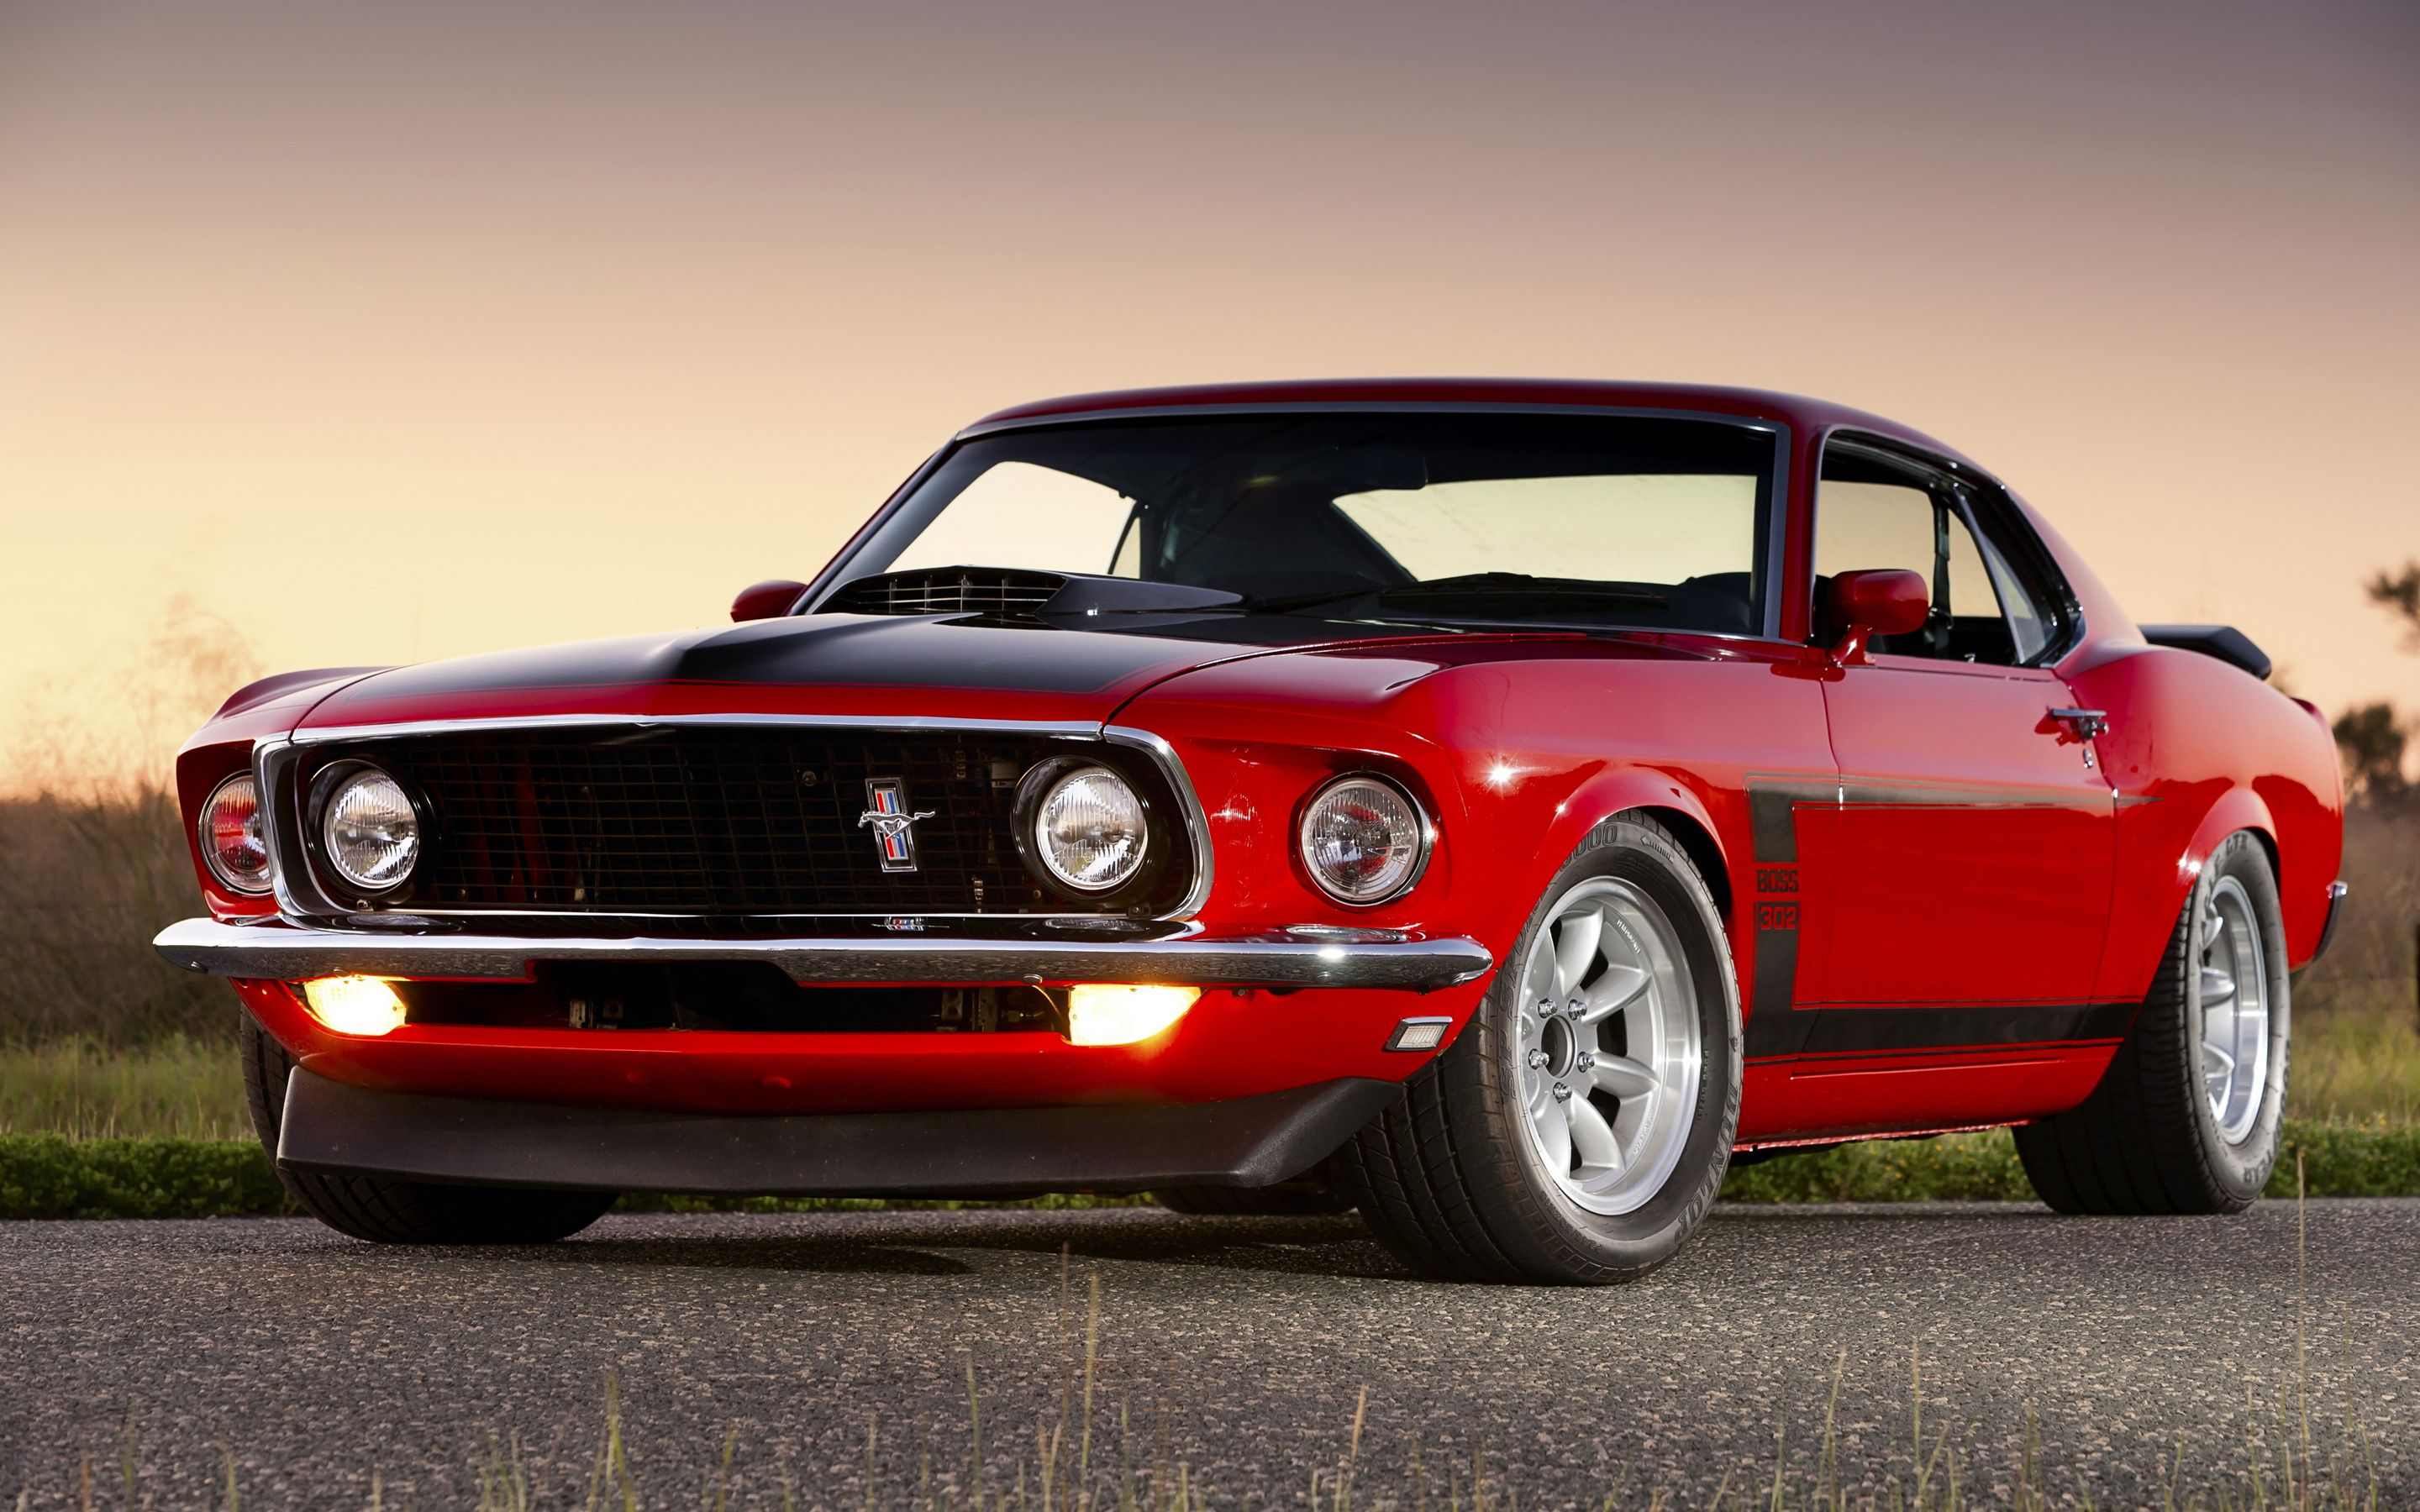 The Boss 302 Mustang is a high performance variant of the Ford